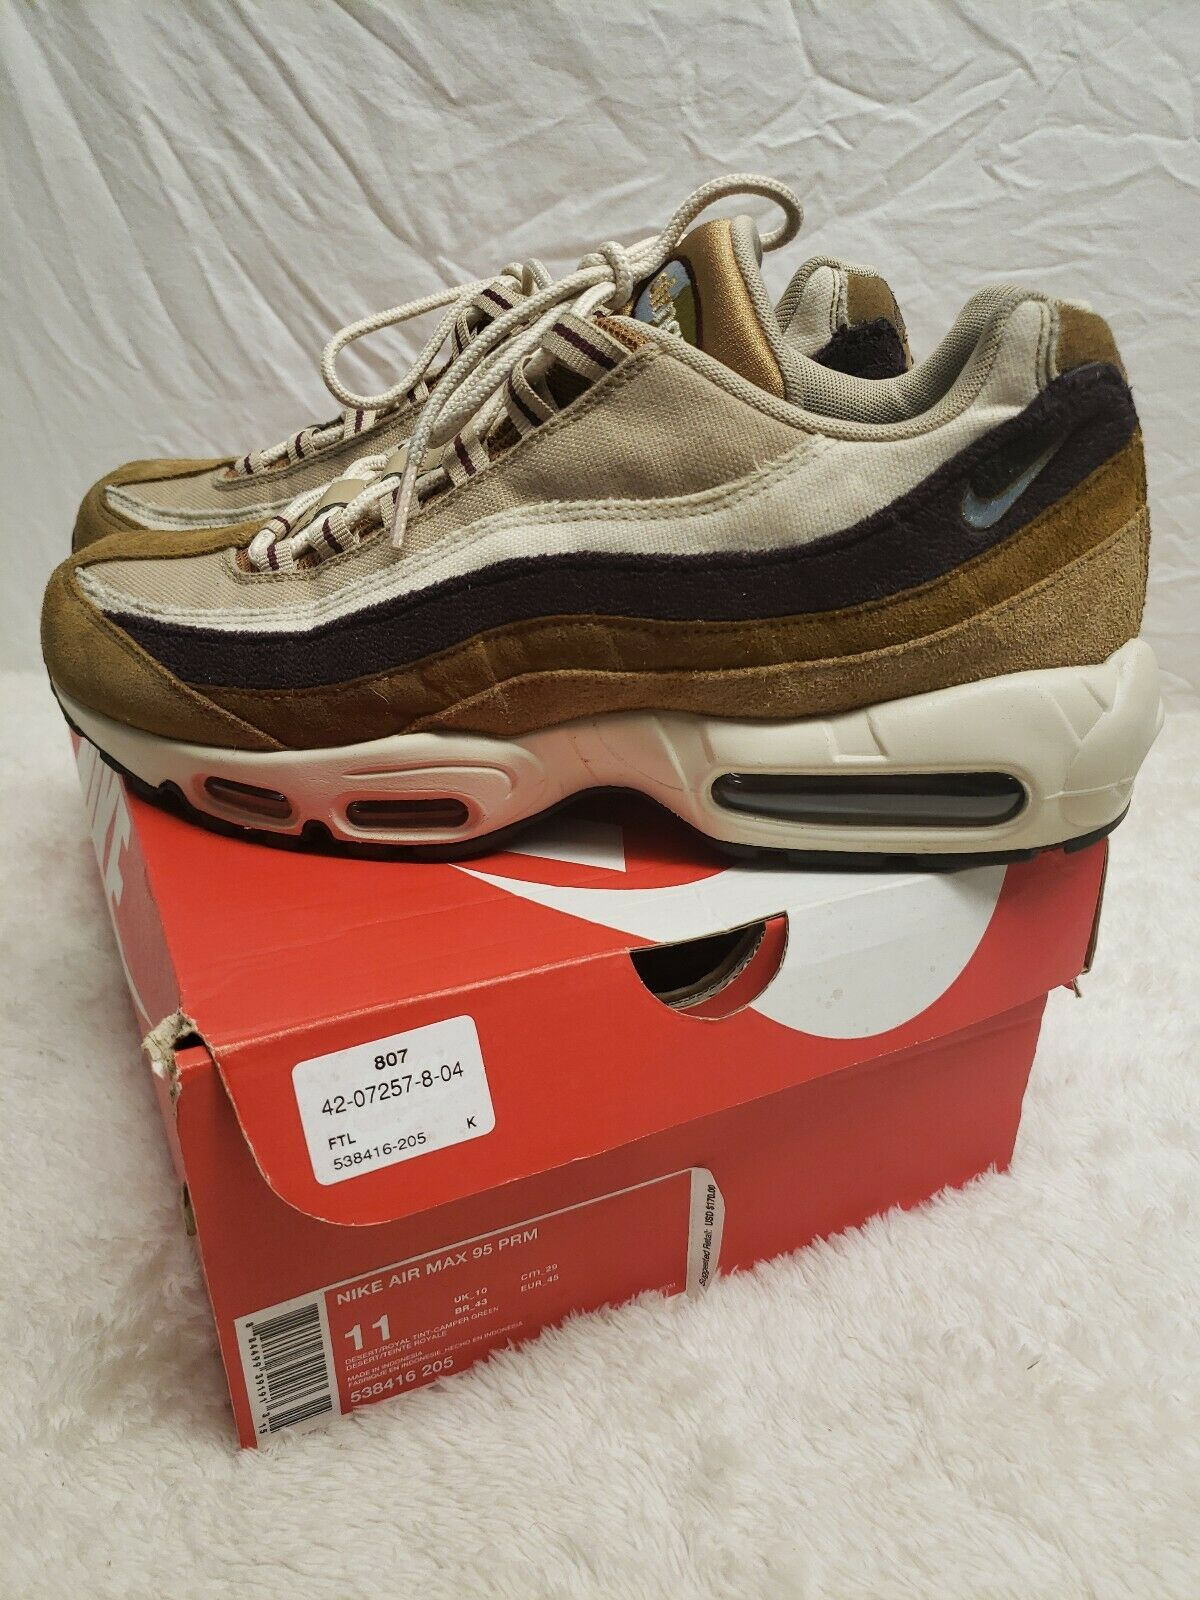 the latest 46cab 2a85e Nike air max 95 premium desert size 11 11 11 538416 205 PRM ...